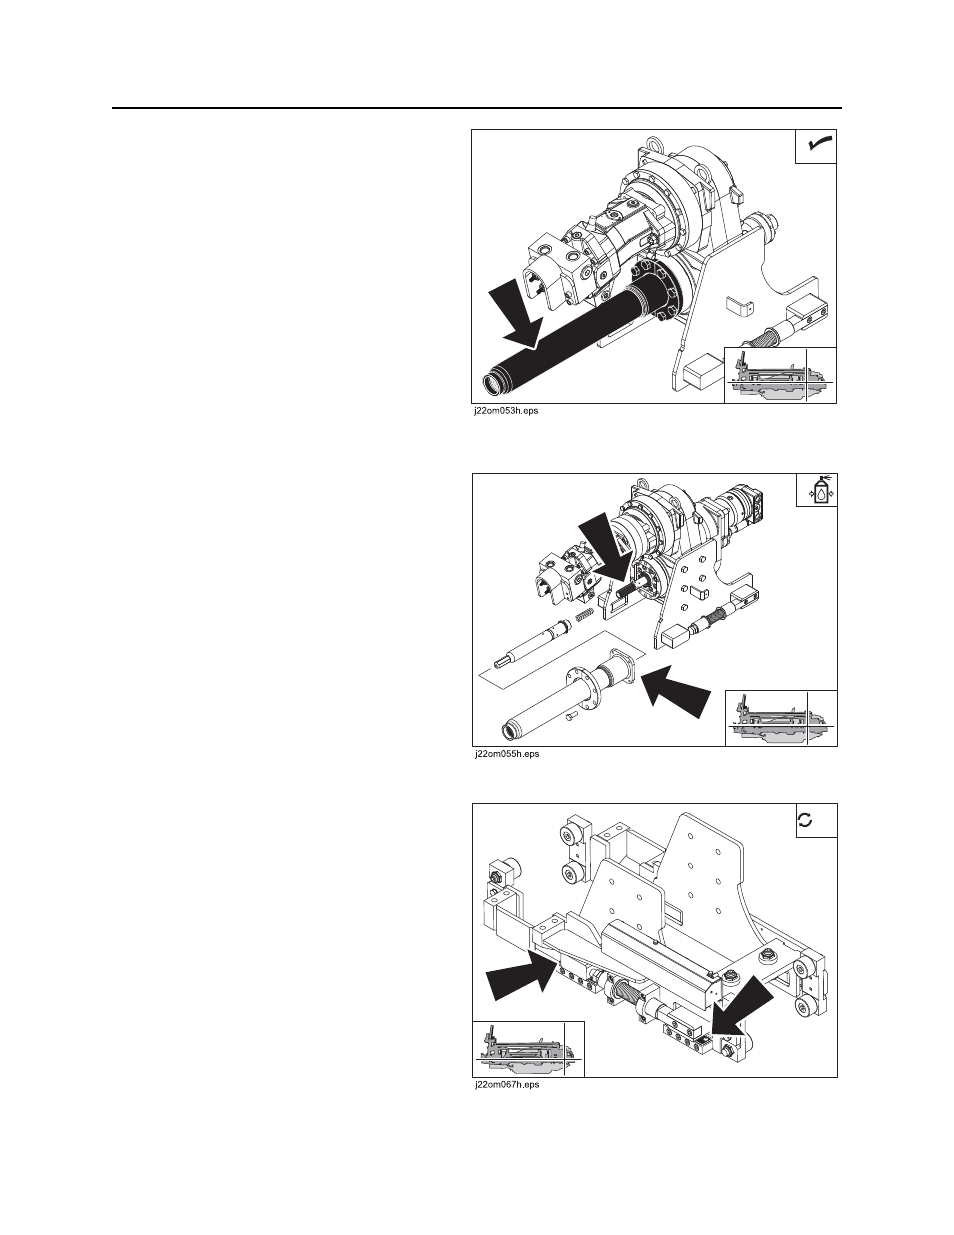 Jt30 /jt30 all terrain operator's manual | Ditch Witch JT30AT User Manual |  Page 233 / 245